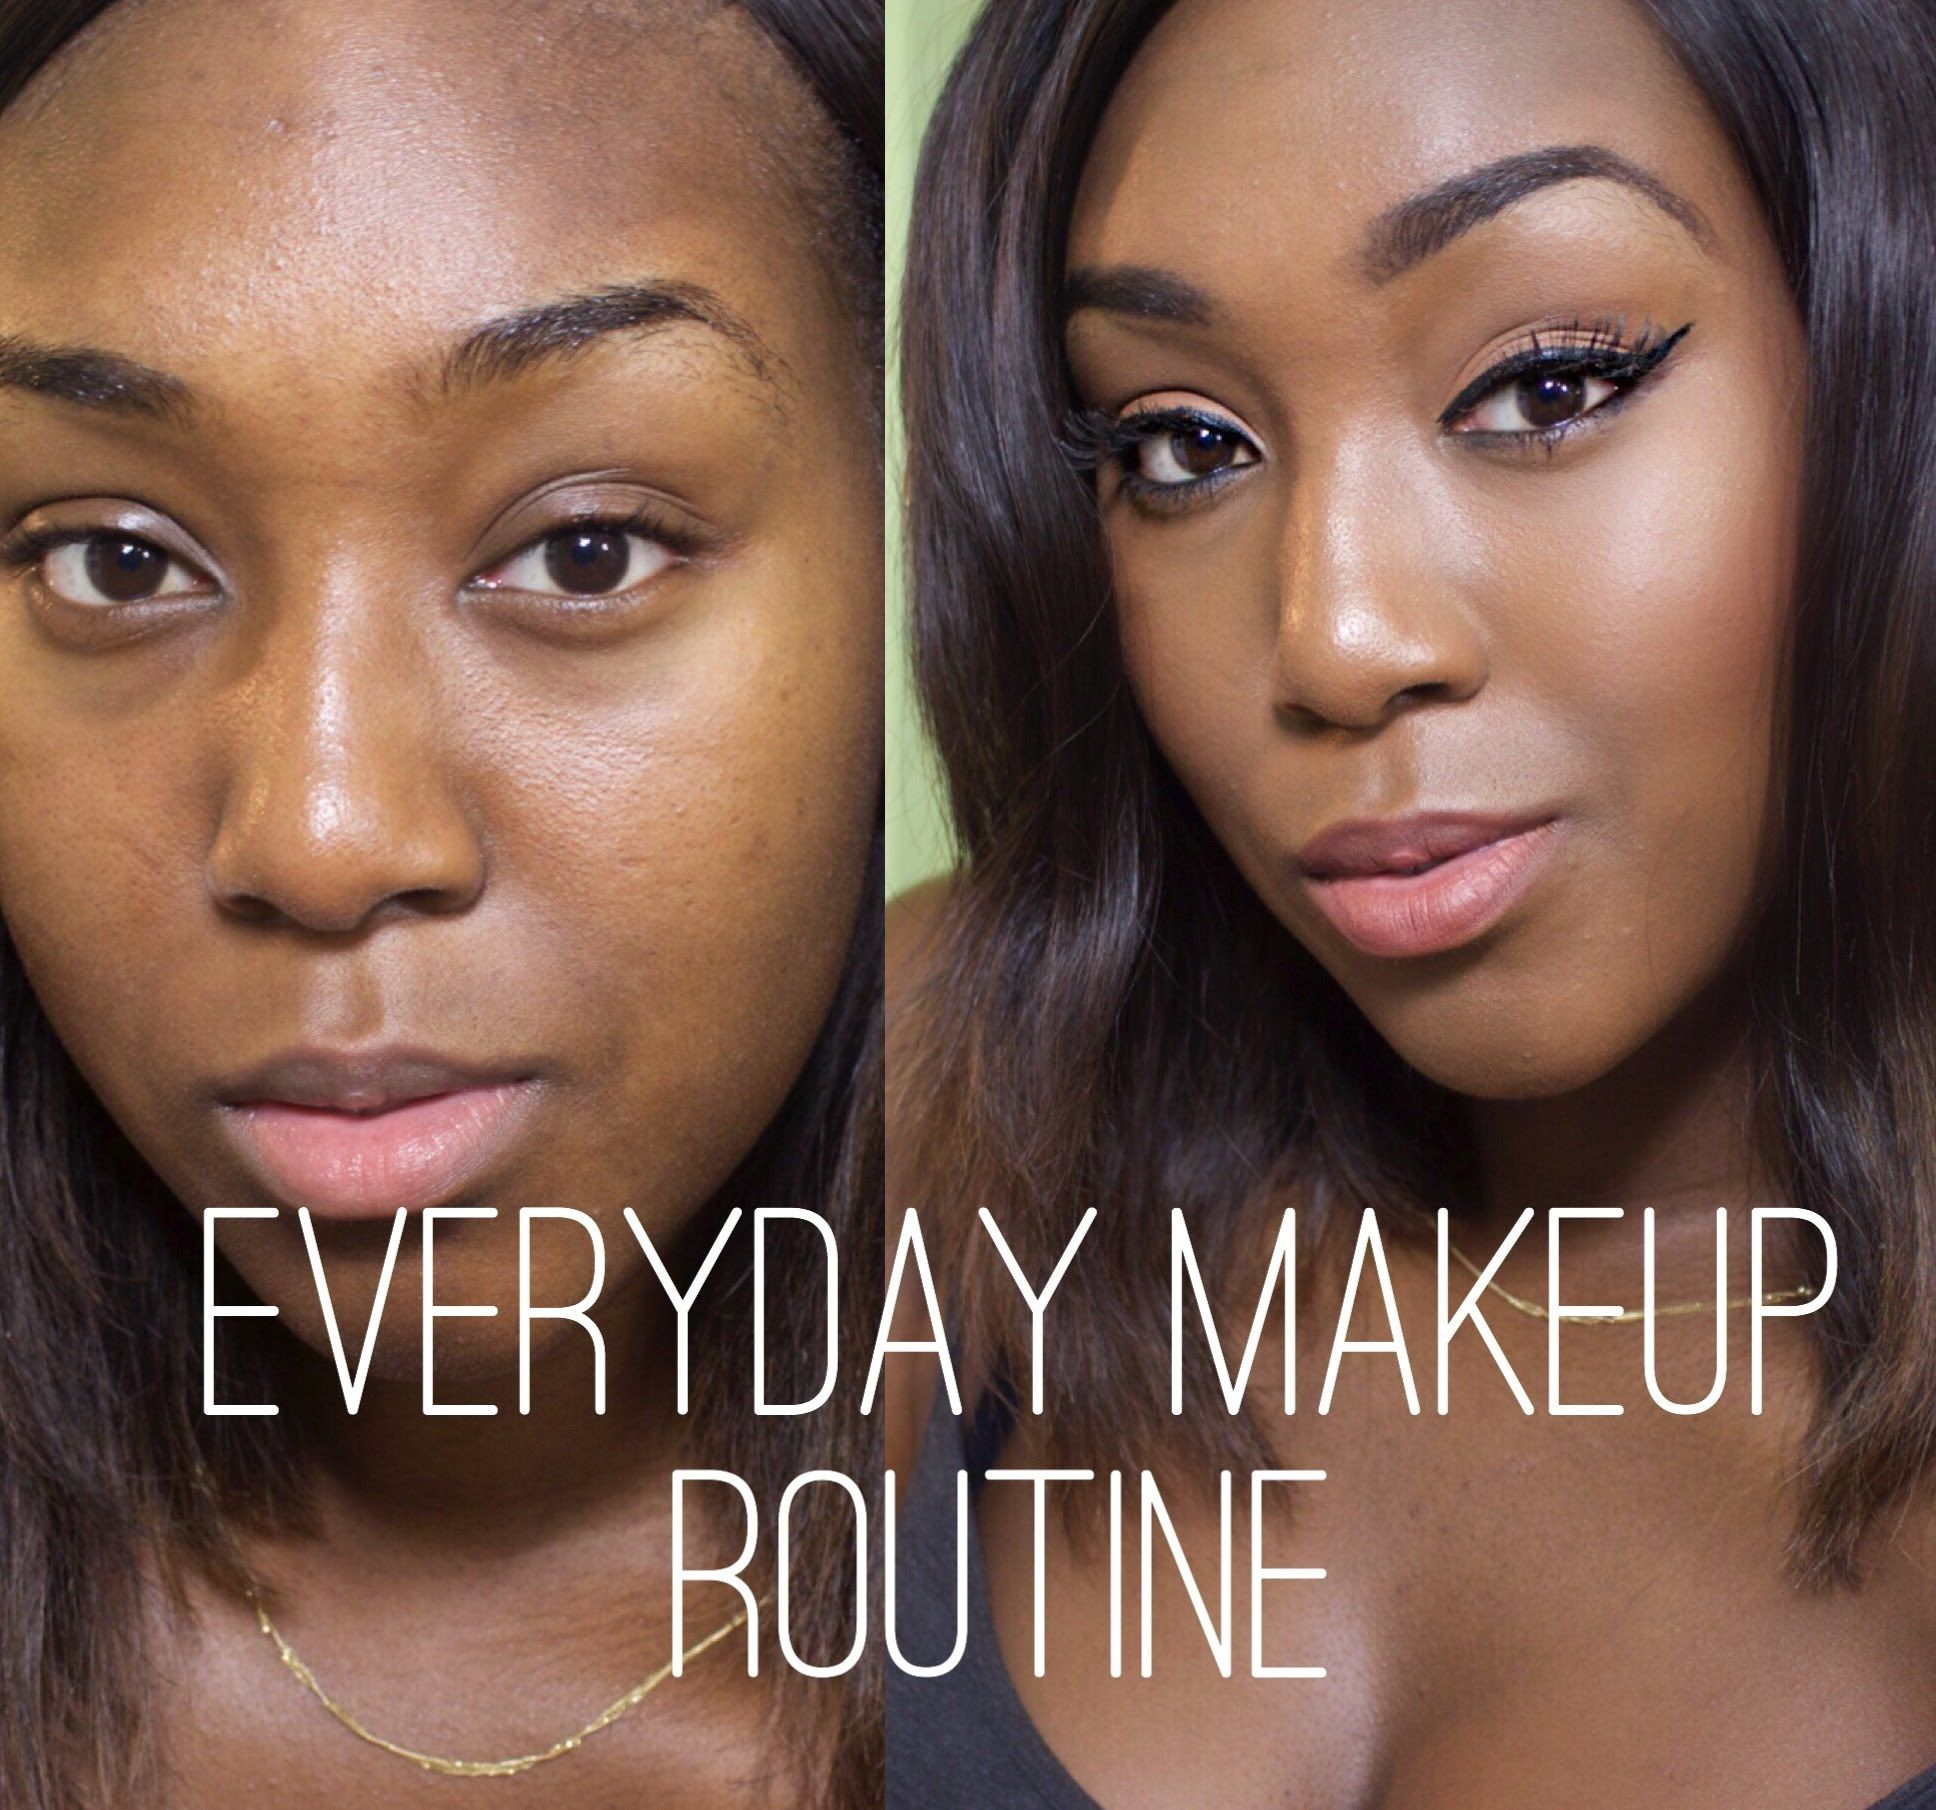 DRUGSTORE ONLY !! SIMPLE EVERYDAY MAKEUP ROUTINE FOR DARK